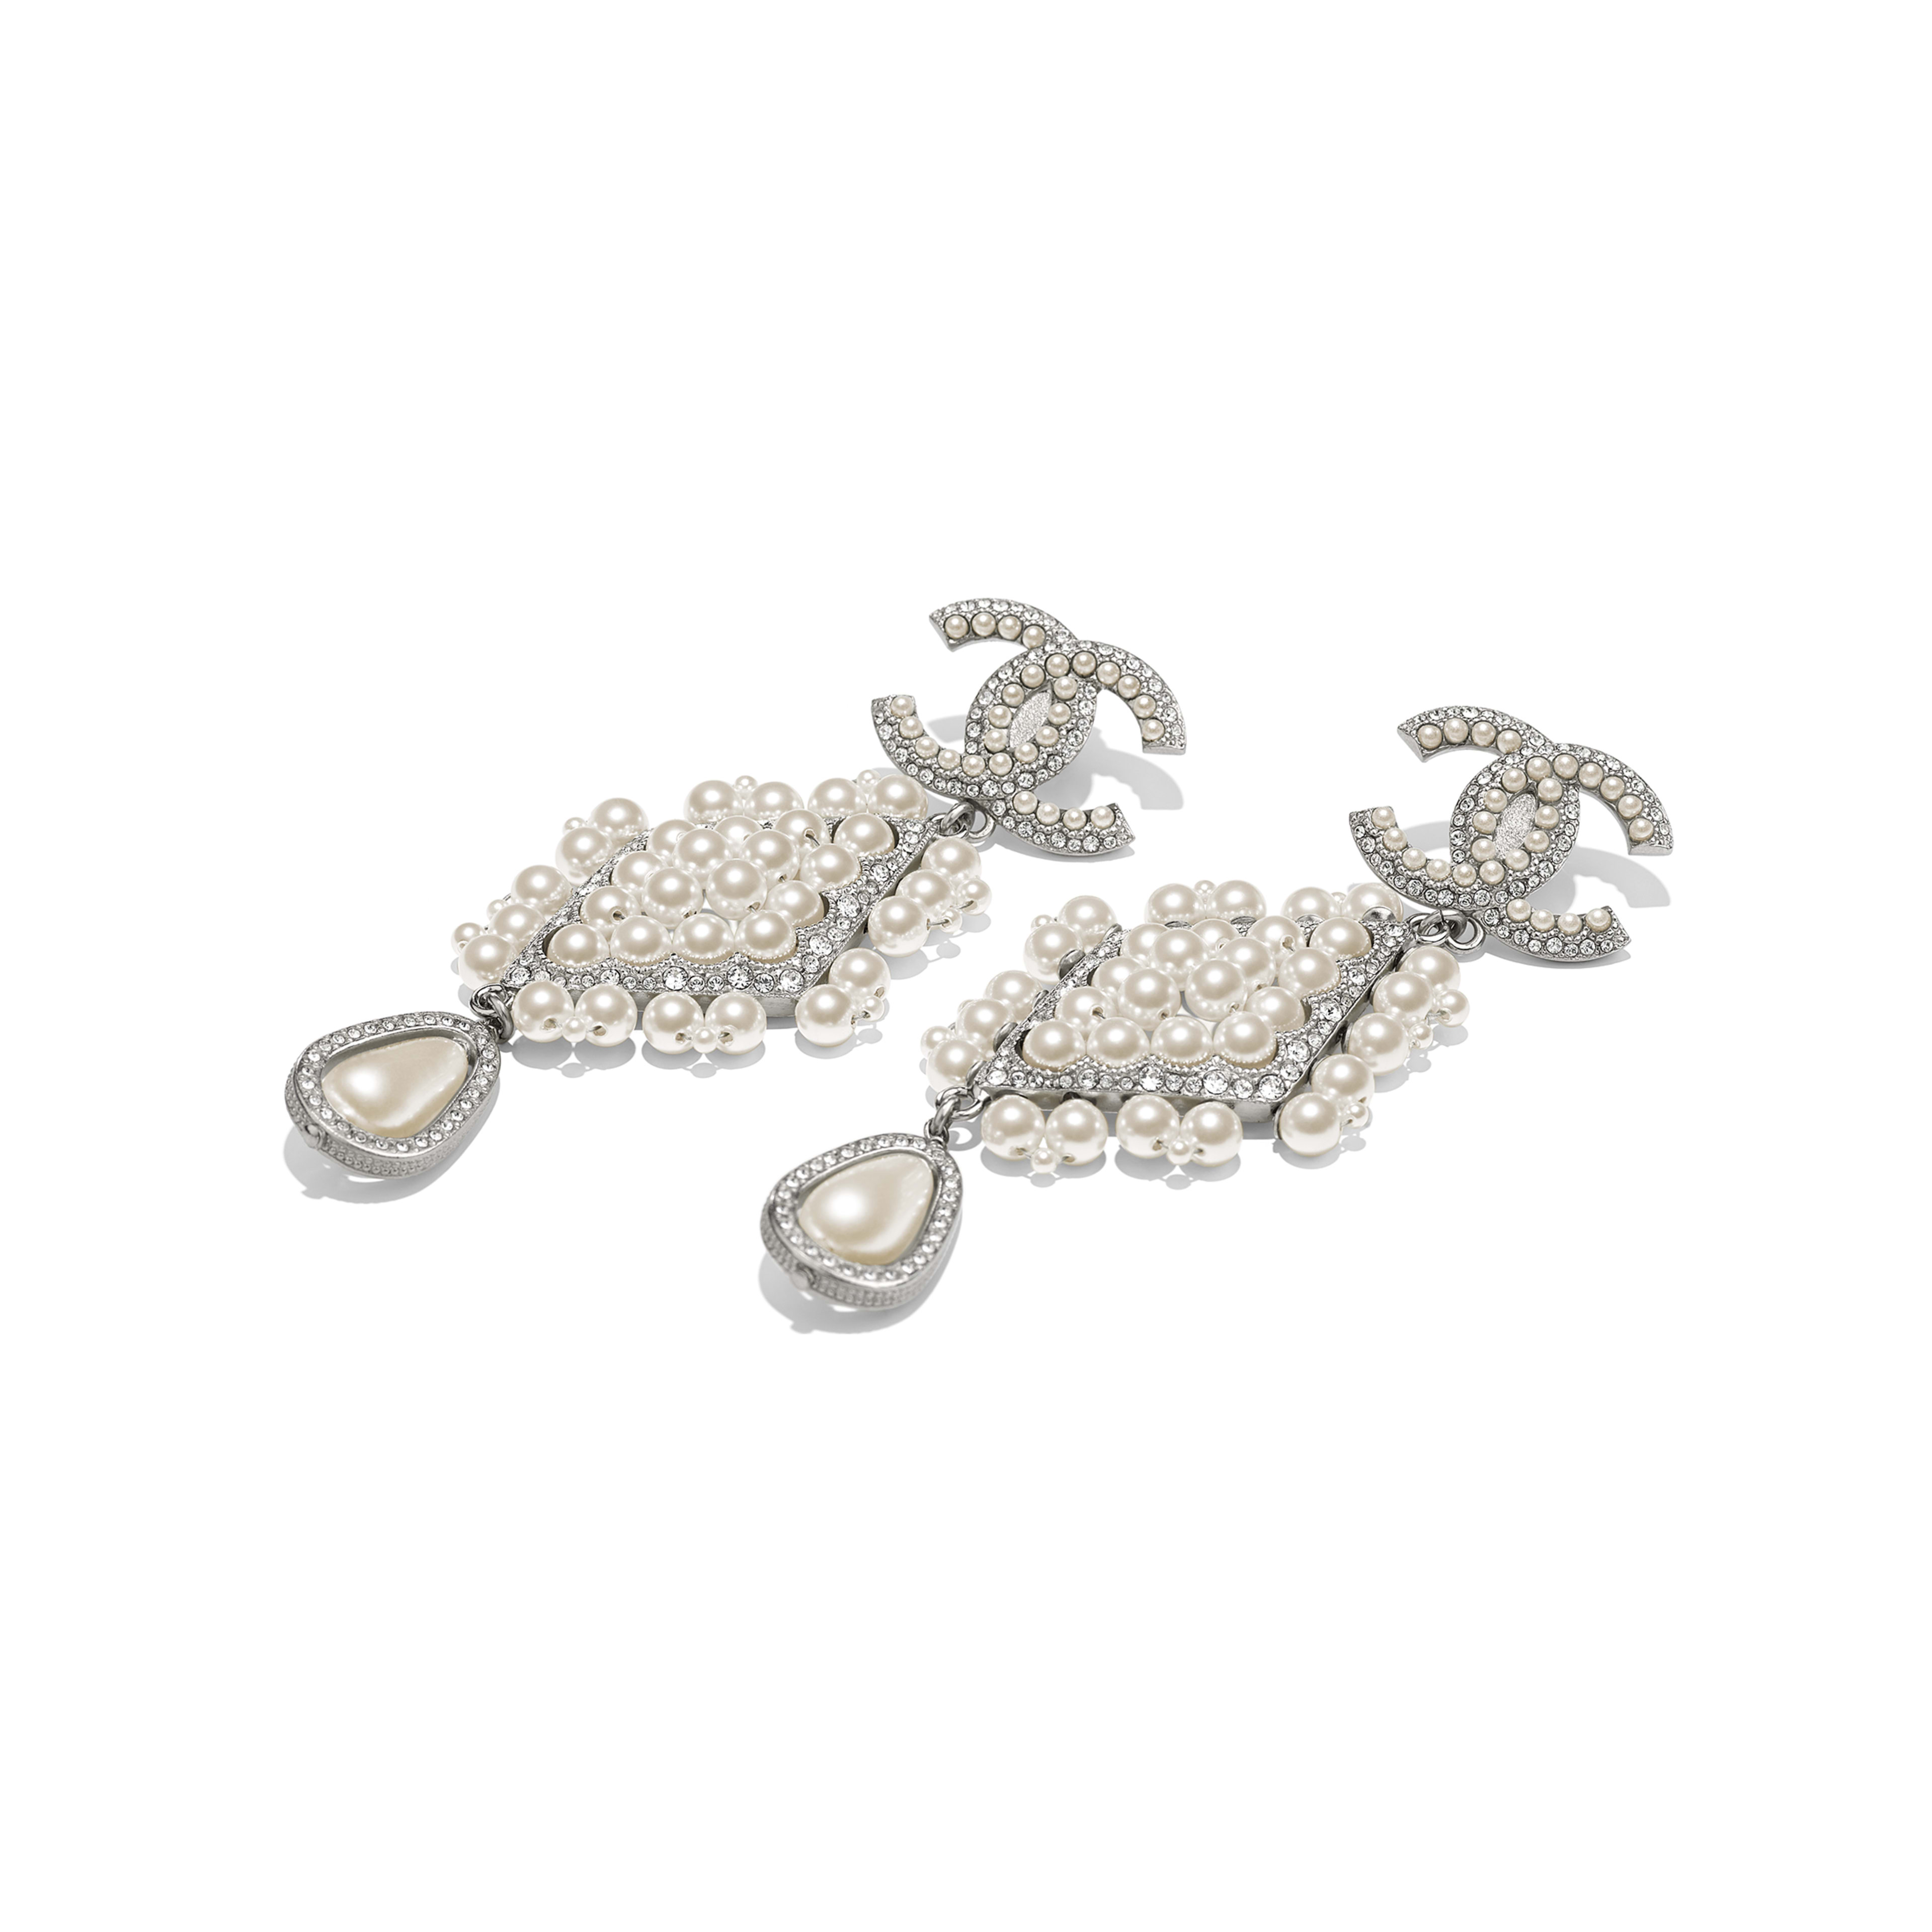 Clip-on Earrings - Silver, Pearly White & Crystal - Metal, Glass Pearls & Strass - Alternative view - see full sized version